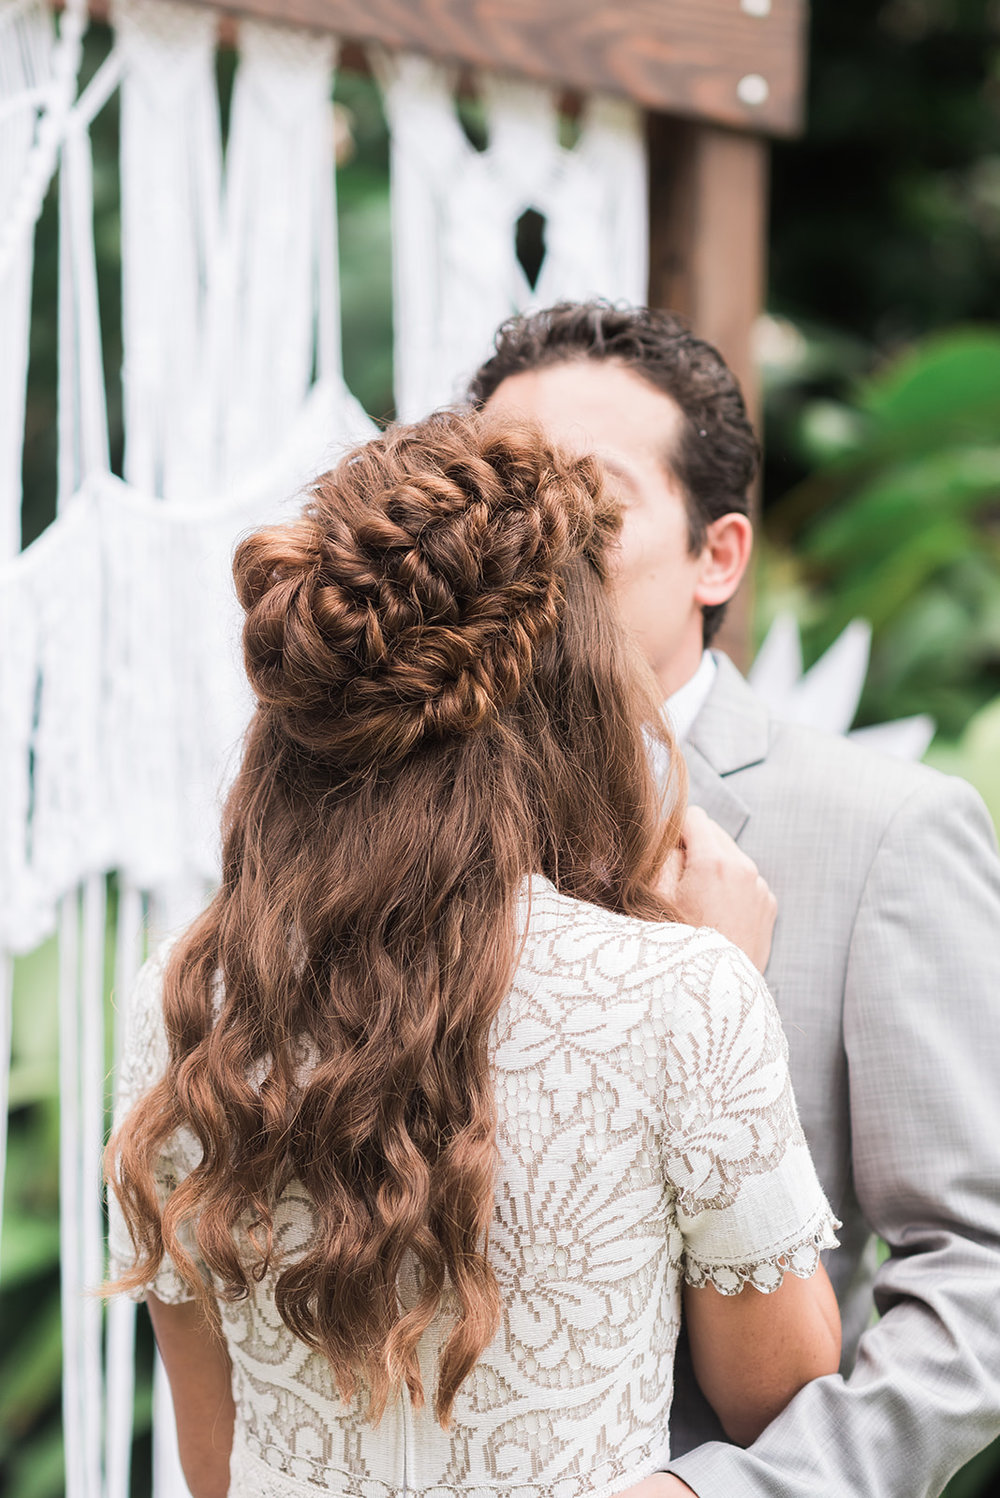 Boho Braided Half Updo For this hawaiin Dream of a wedding    Photo by- Rae Marshall Photography     www.raemarshall.com